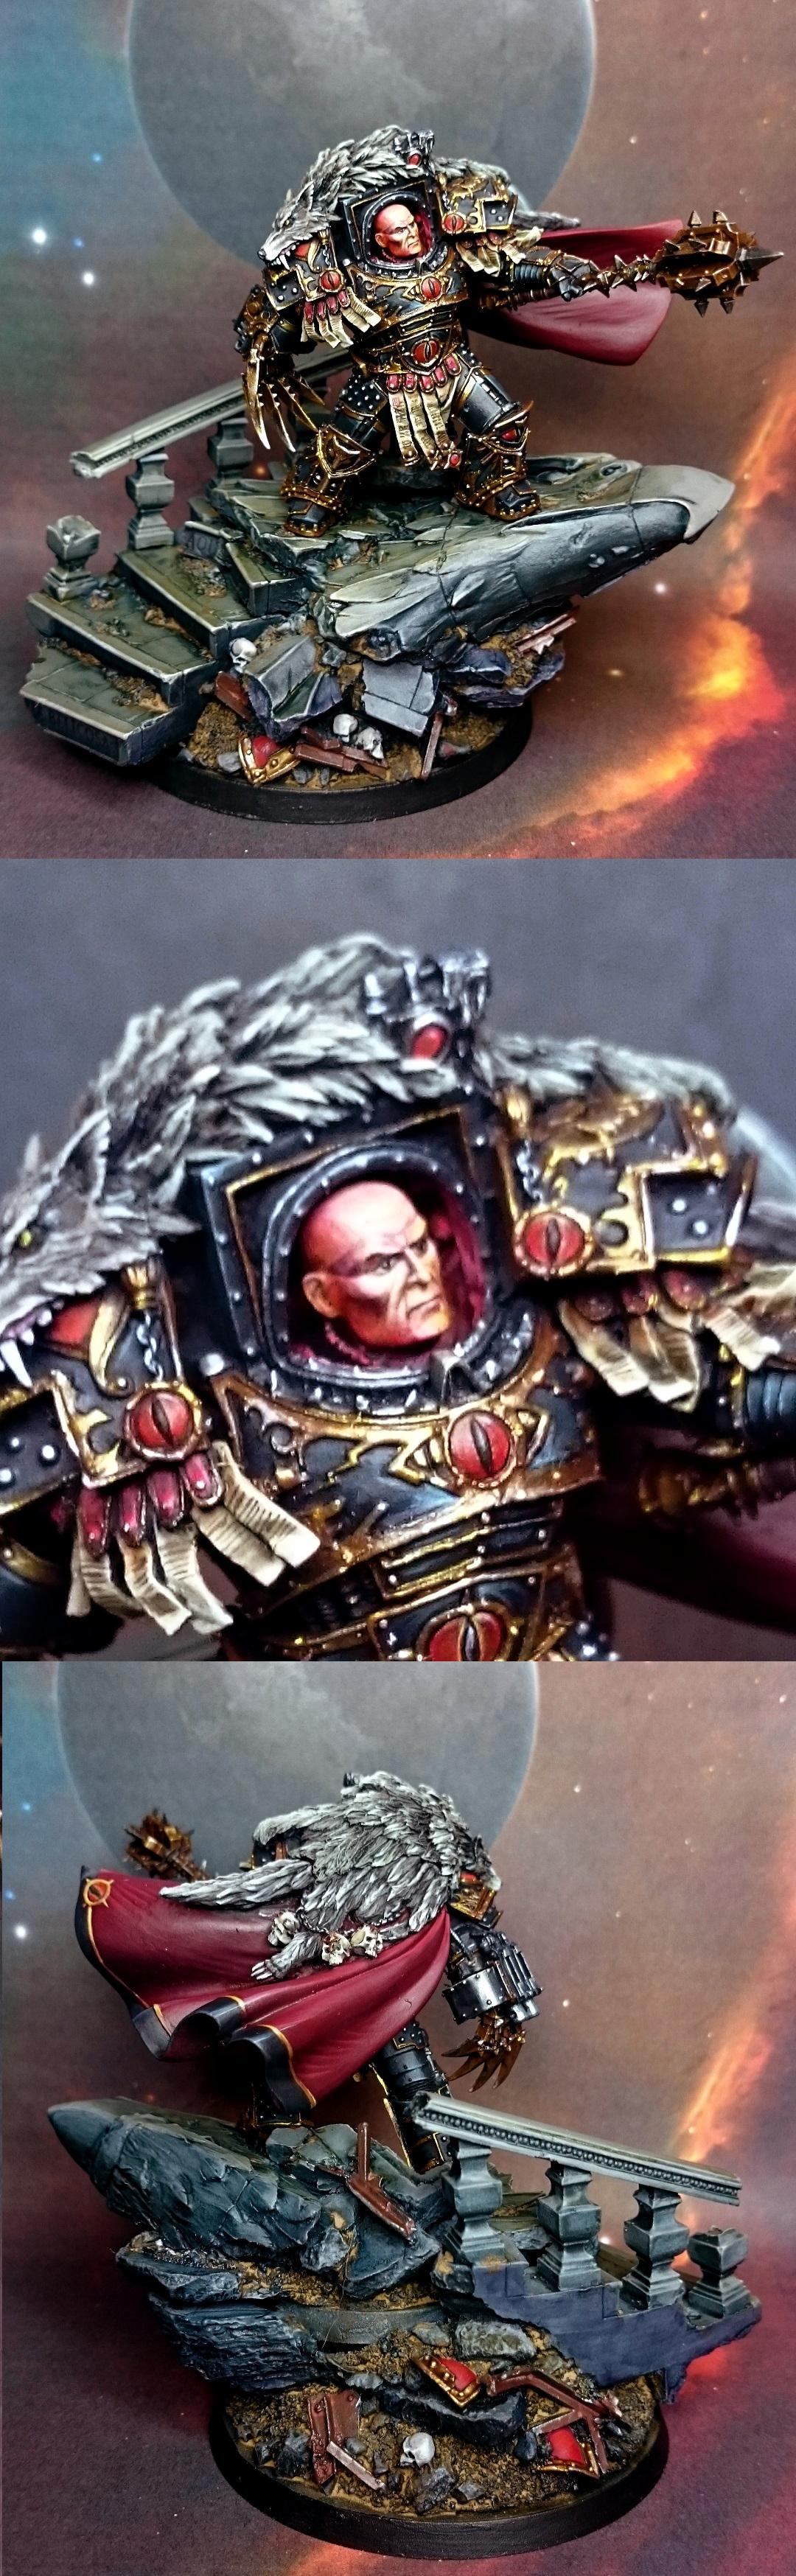 Forge World, Horus Heresy, Horus Lupercal, Primarch, Sons Oh Horus